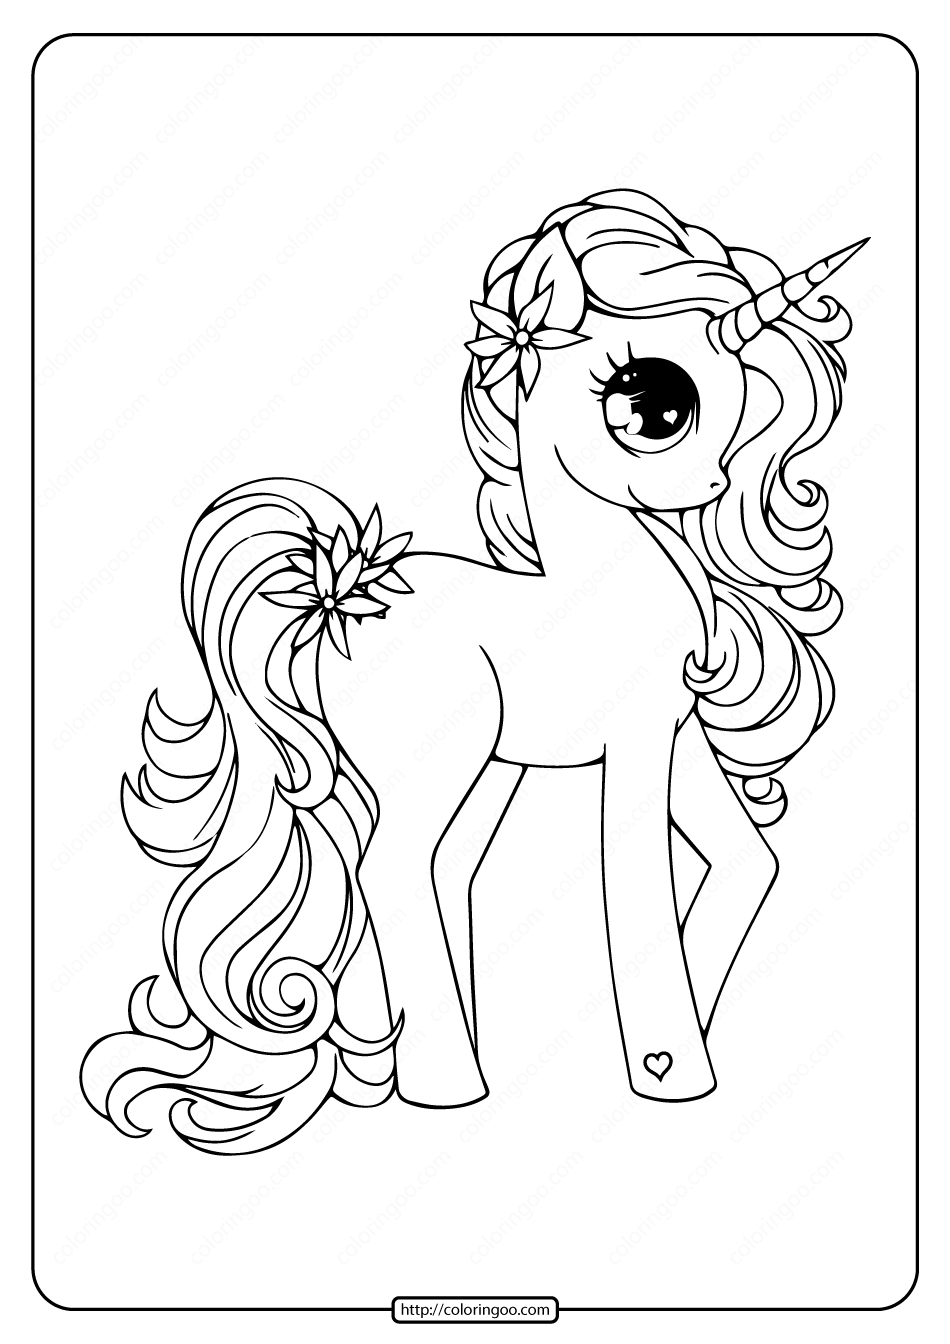 unicorn pictures for coloring baby cute gillter eyes unicorn coloring page free unicorn coloring for pictures